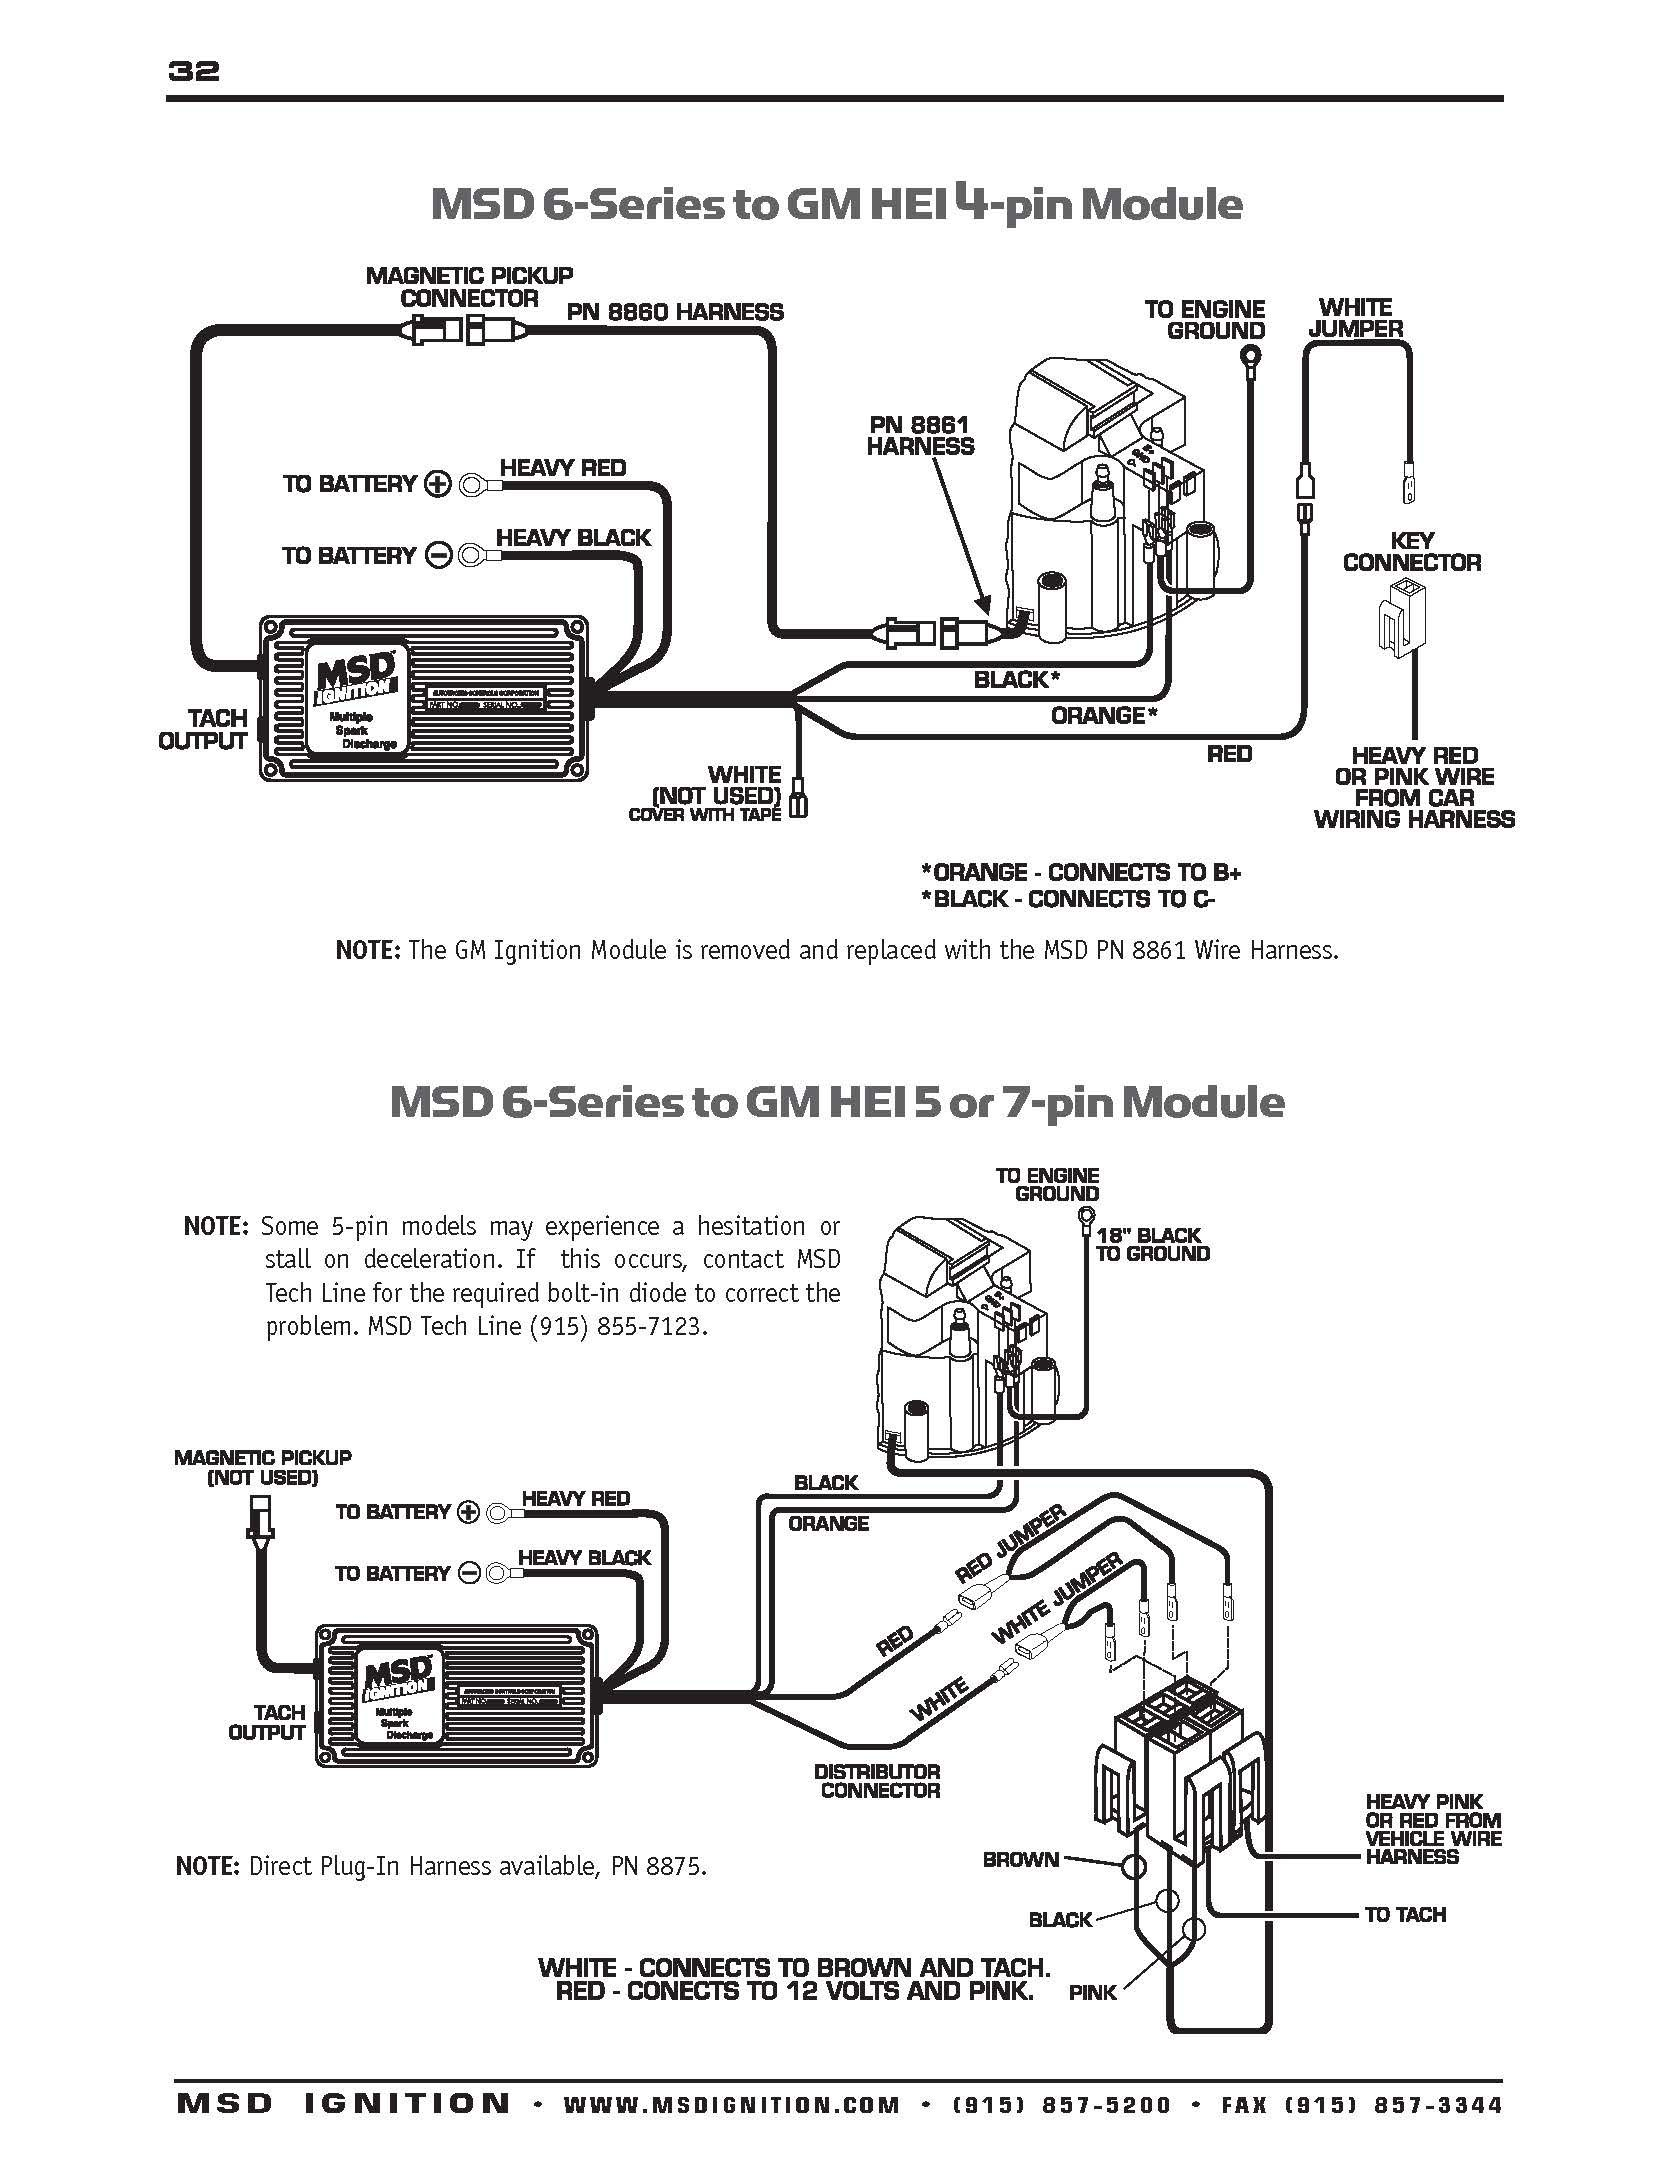 hight resolution of msd ignition wiring diagrams 1966 chevelle diagram automotive 66 chevelle ignition switch wiring diagram 1966 chevelle ignition wiring diagram